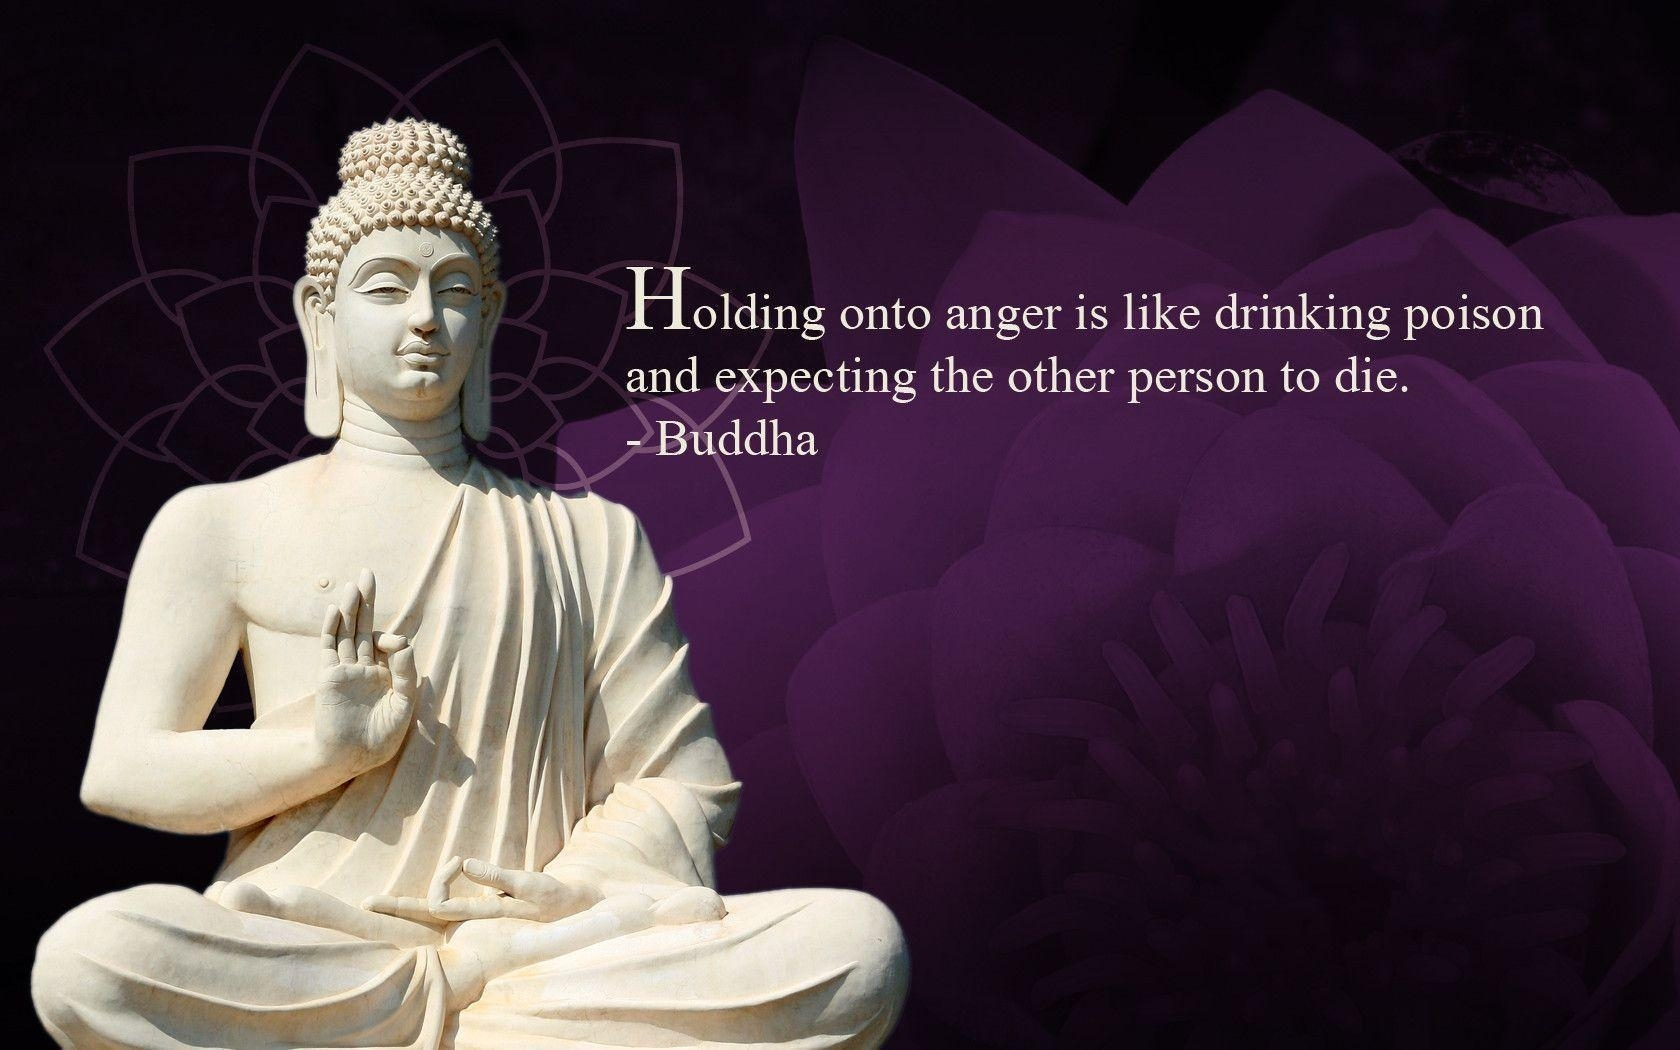 buddha quotes wallpapers - wallpaper cave